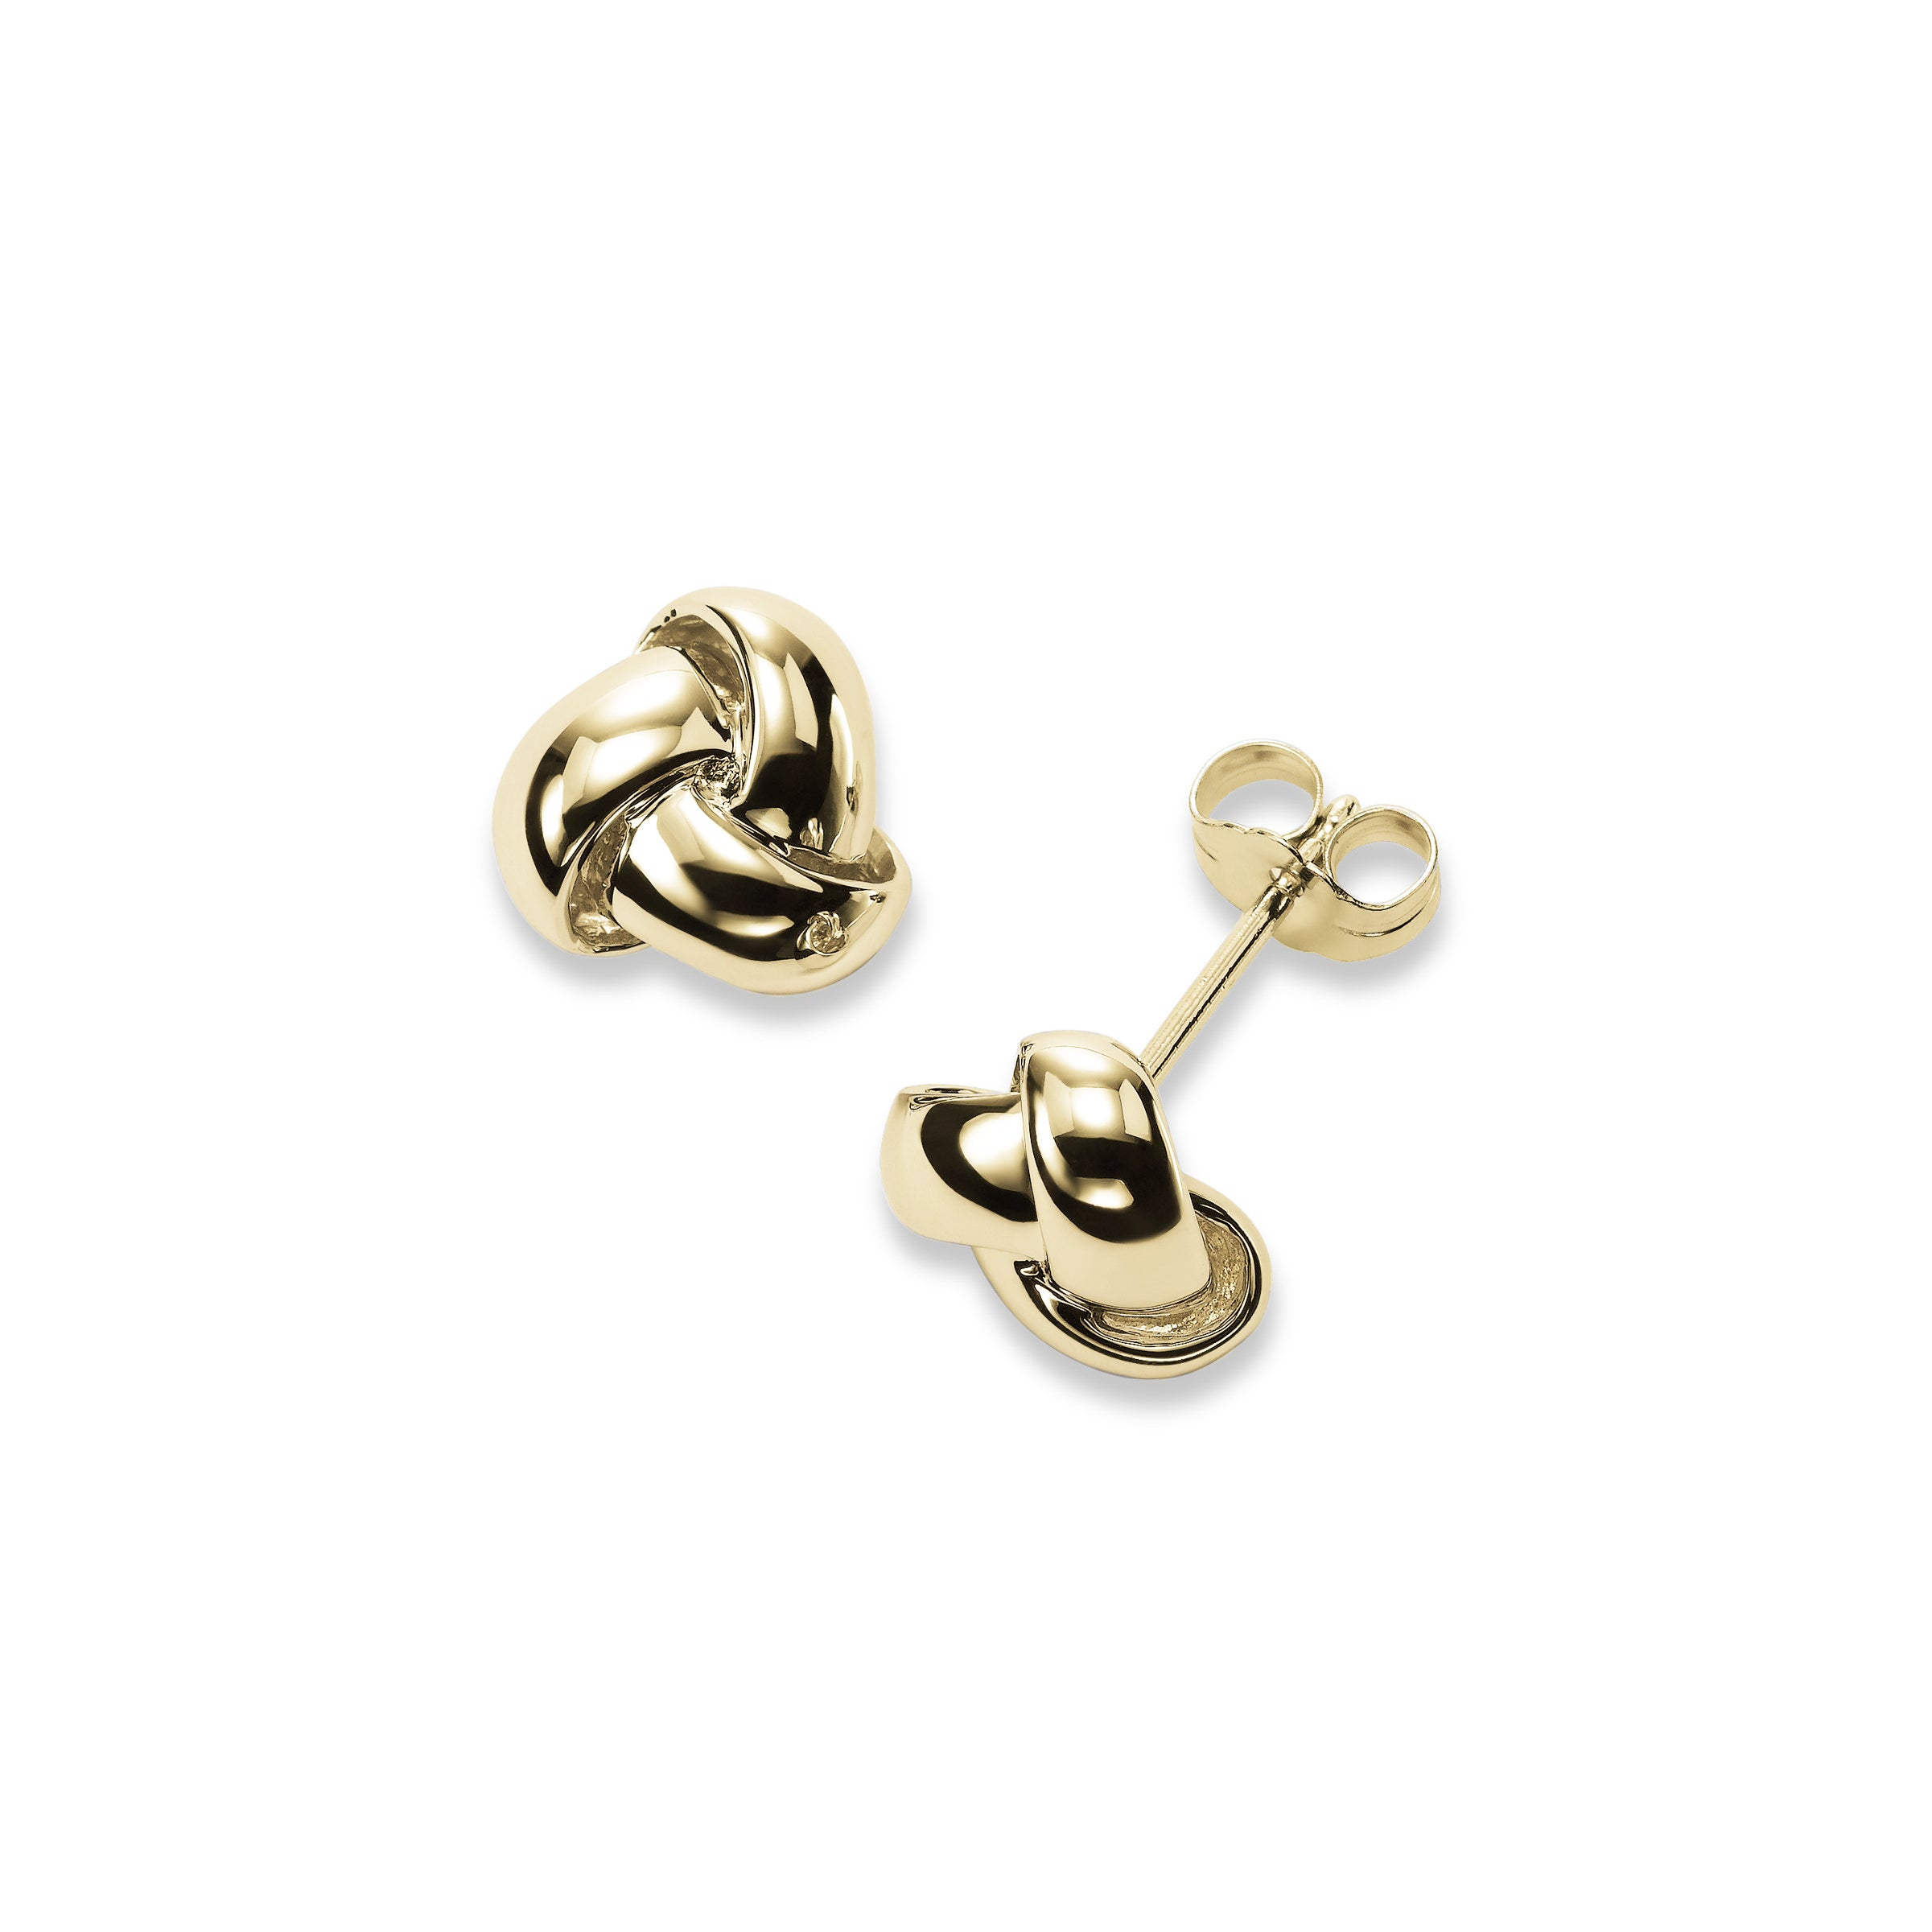 Shiny Knot Stud Earrings, 14K Yellow Gold